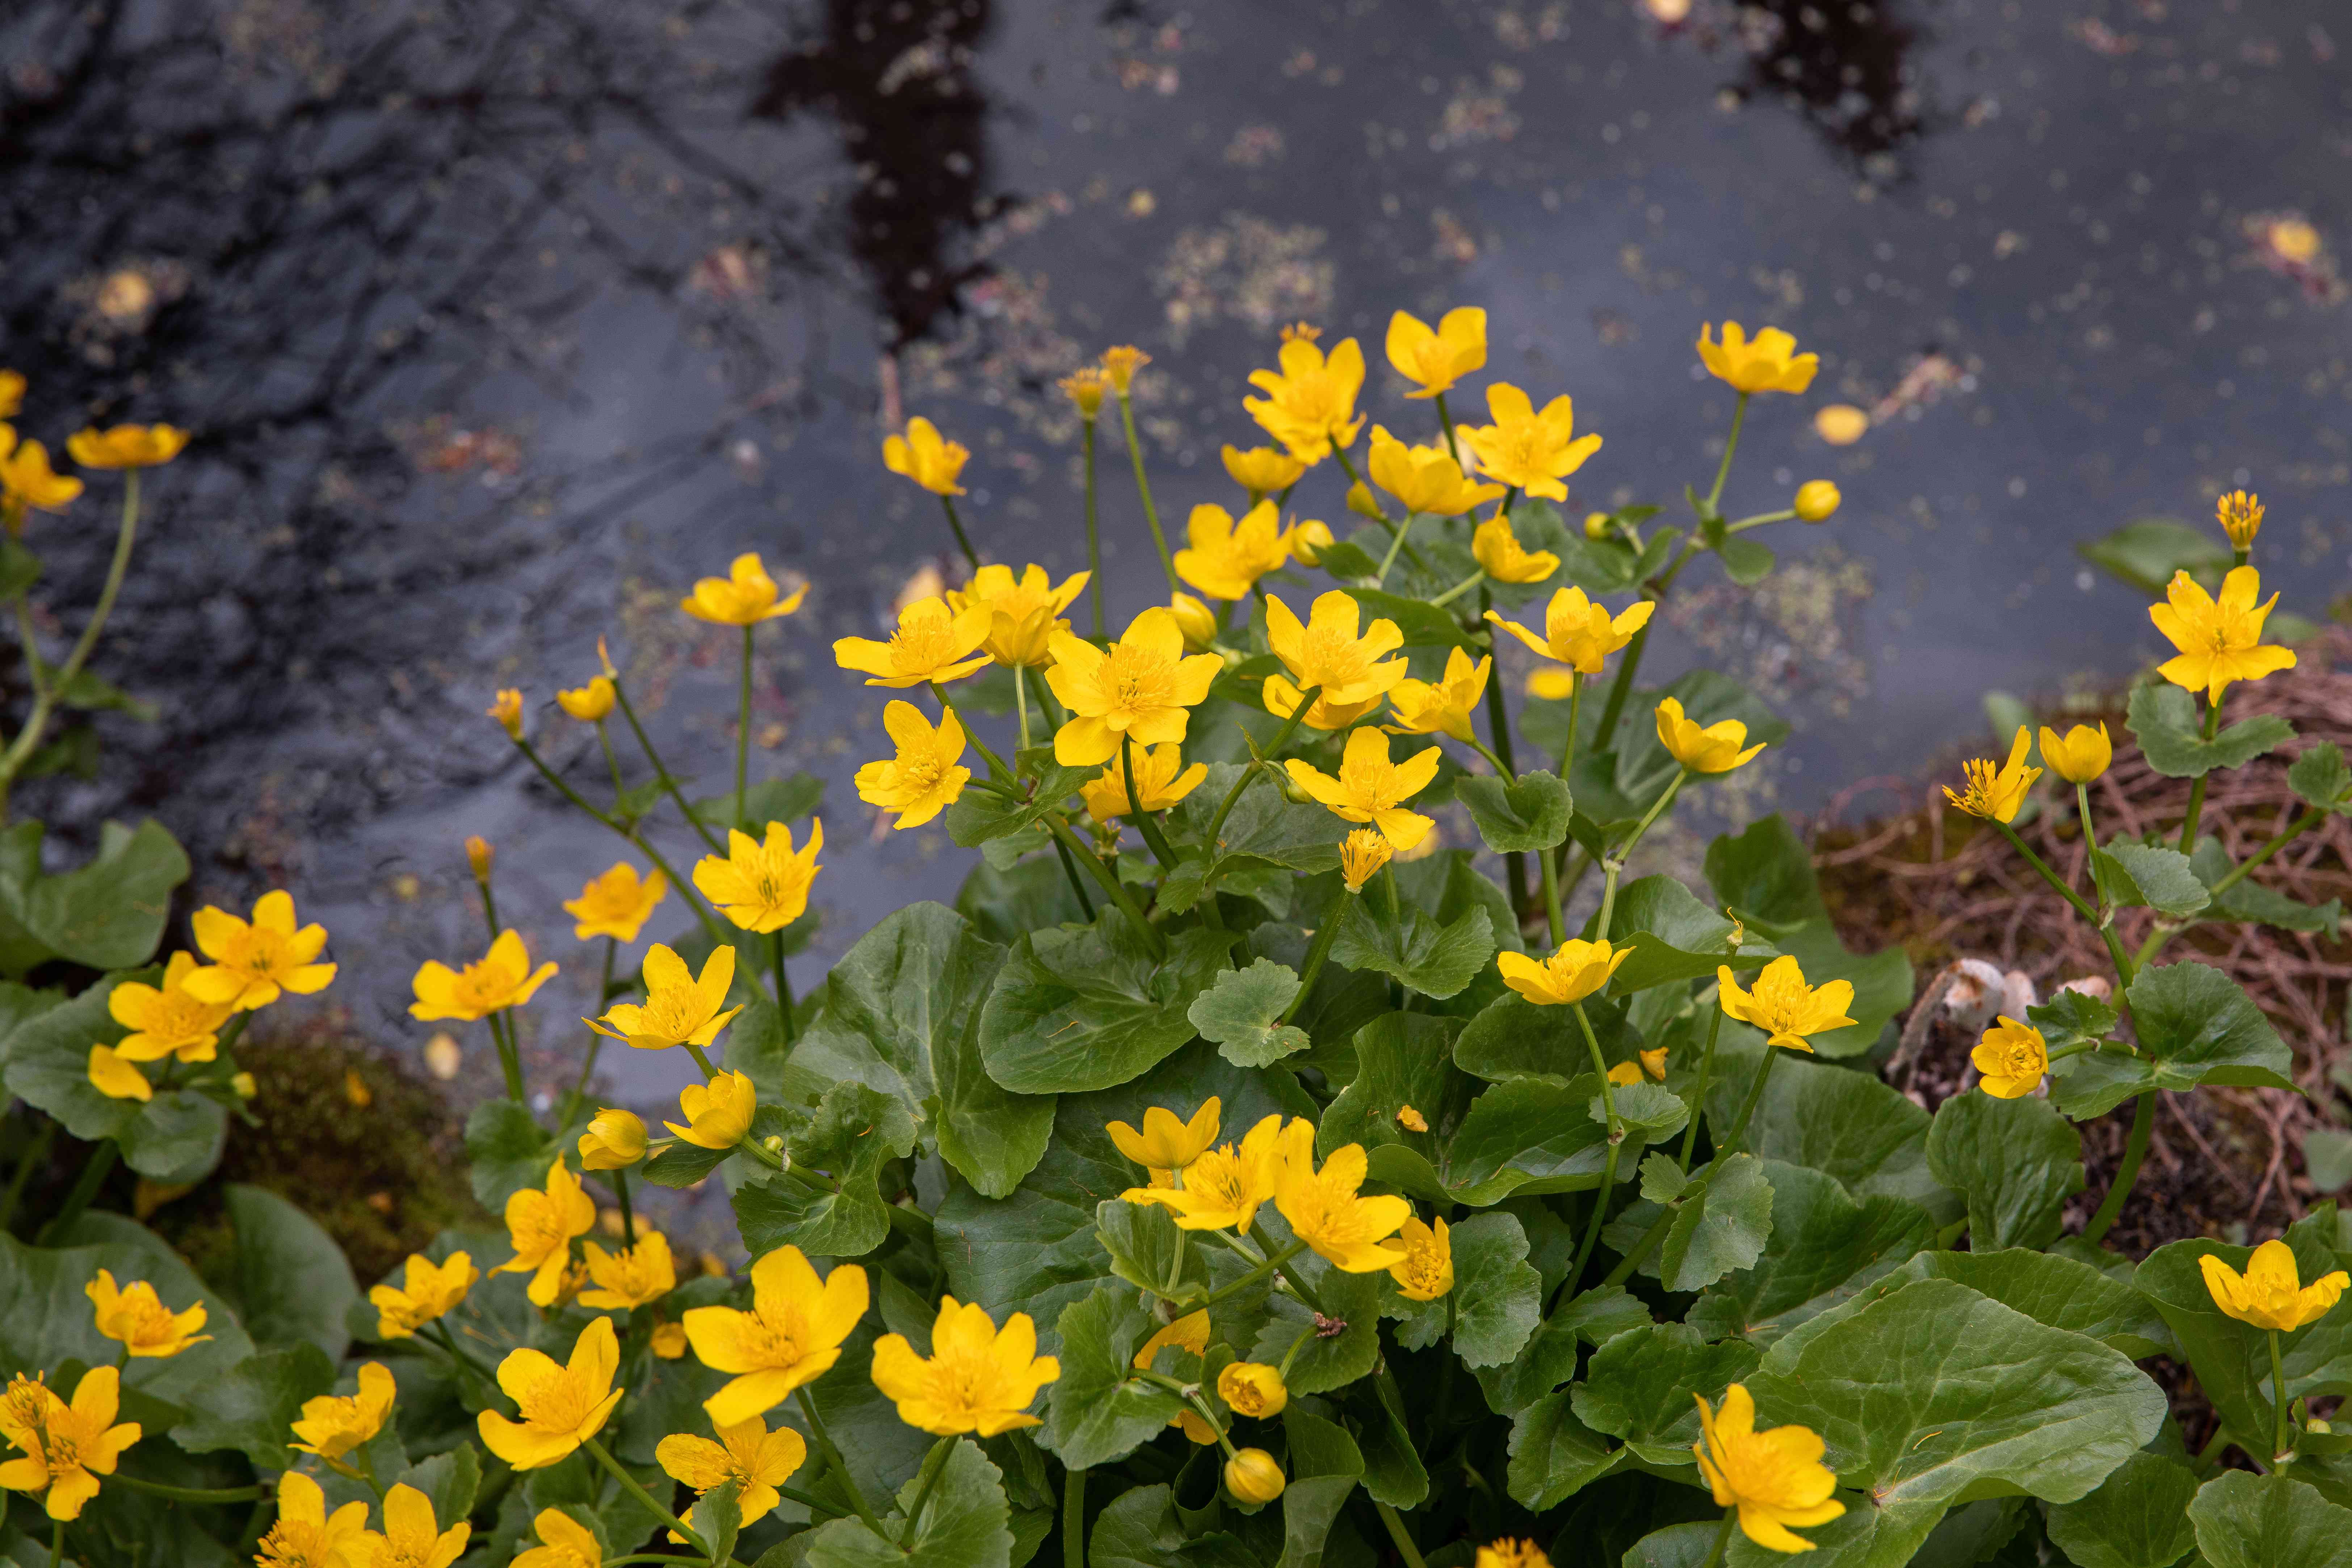 Marsh marigold plant with yellow sepals and buds next to wet paved road